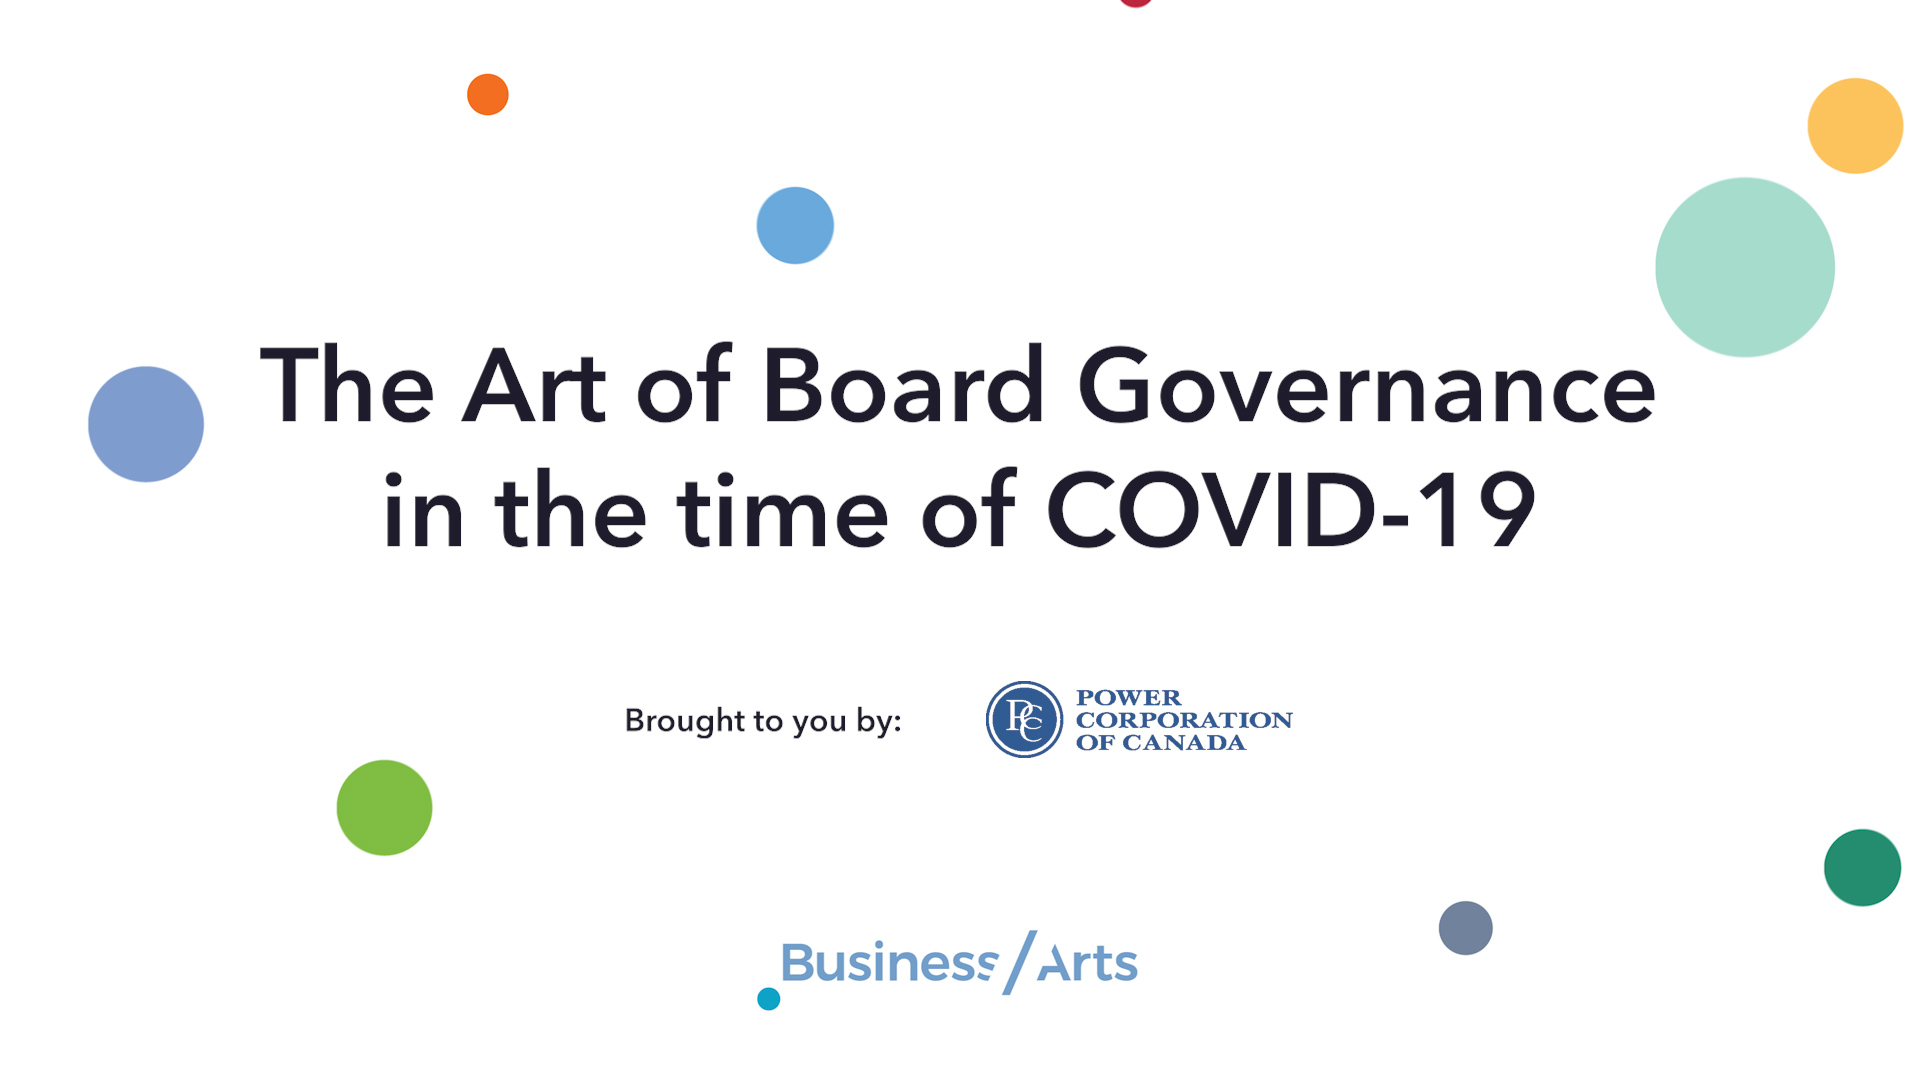 The Art of Board Governance during COVID-19